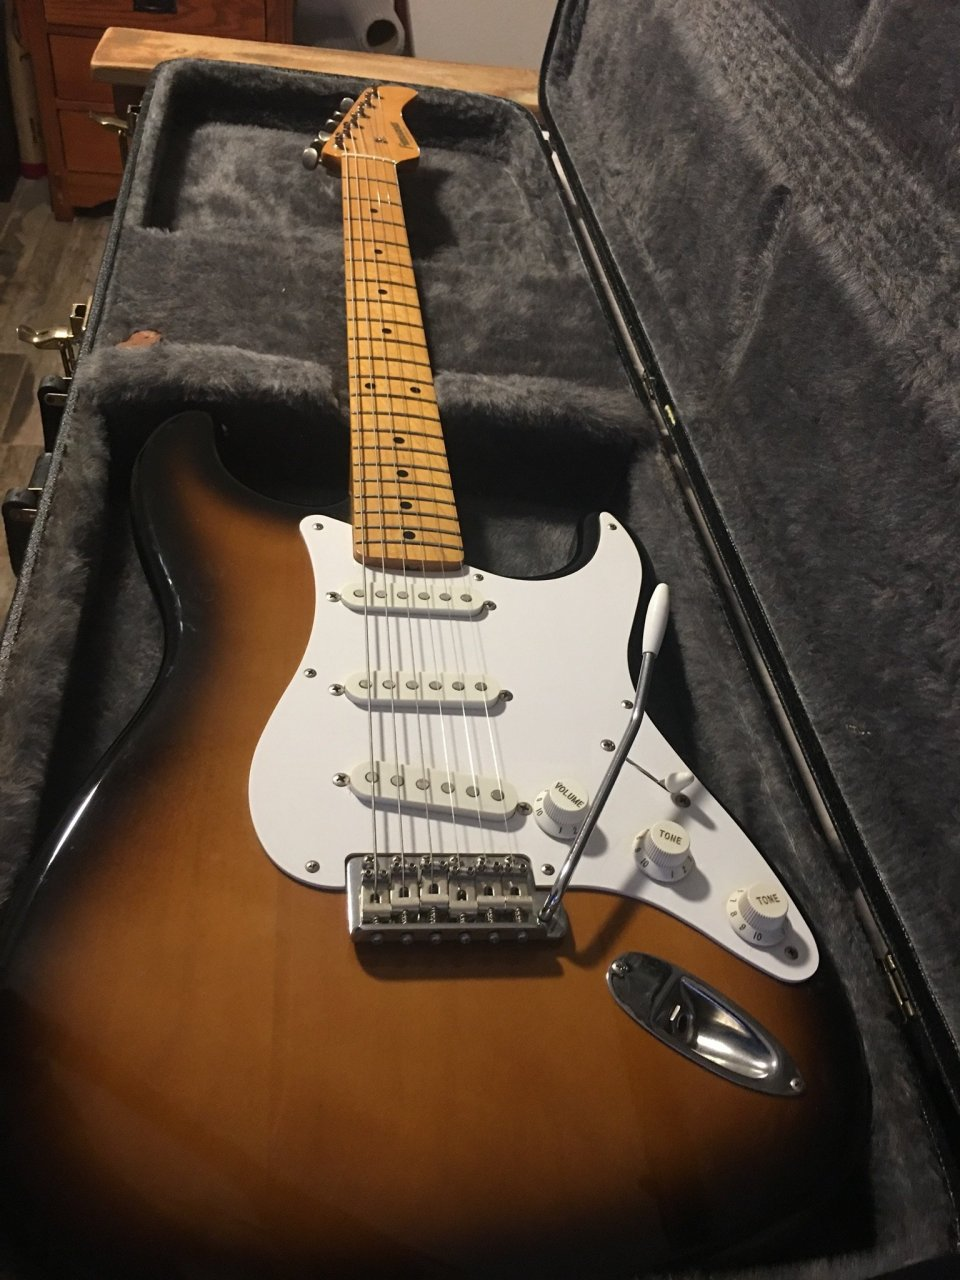 Double Neck Vs Single Neck Guitar Value Of Fernandes Stratocaster Type Guitar Axe Central